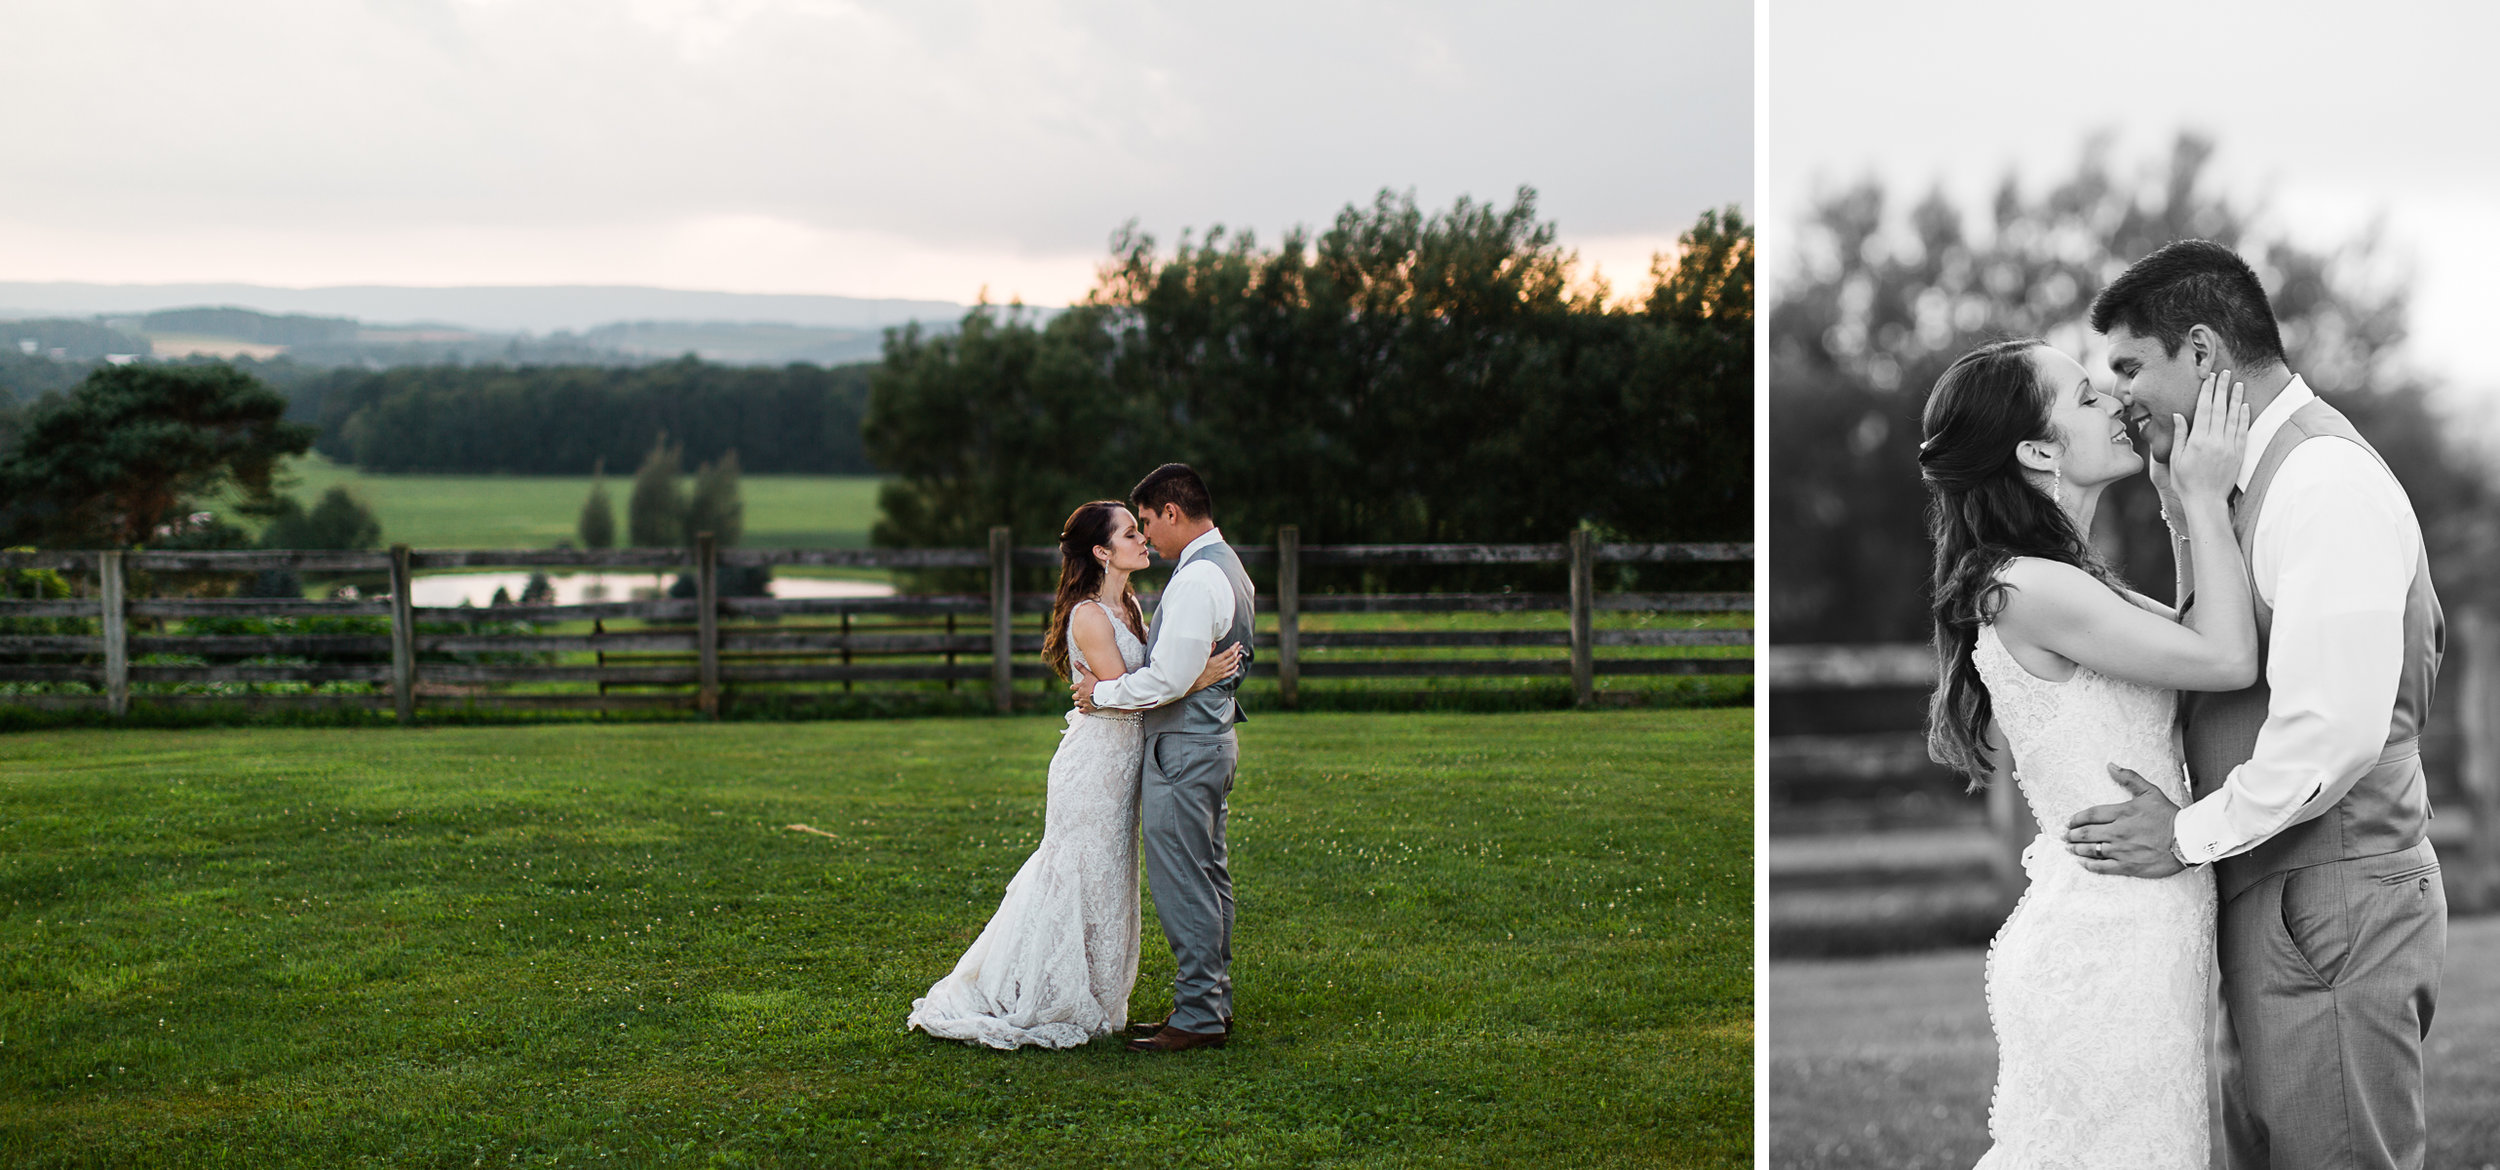 Sunset Bridal Portraits Pittsburgh wedding photographer.jpg